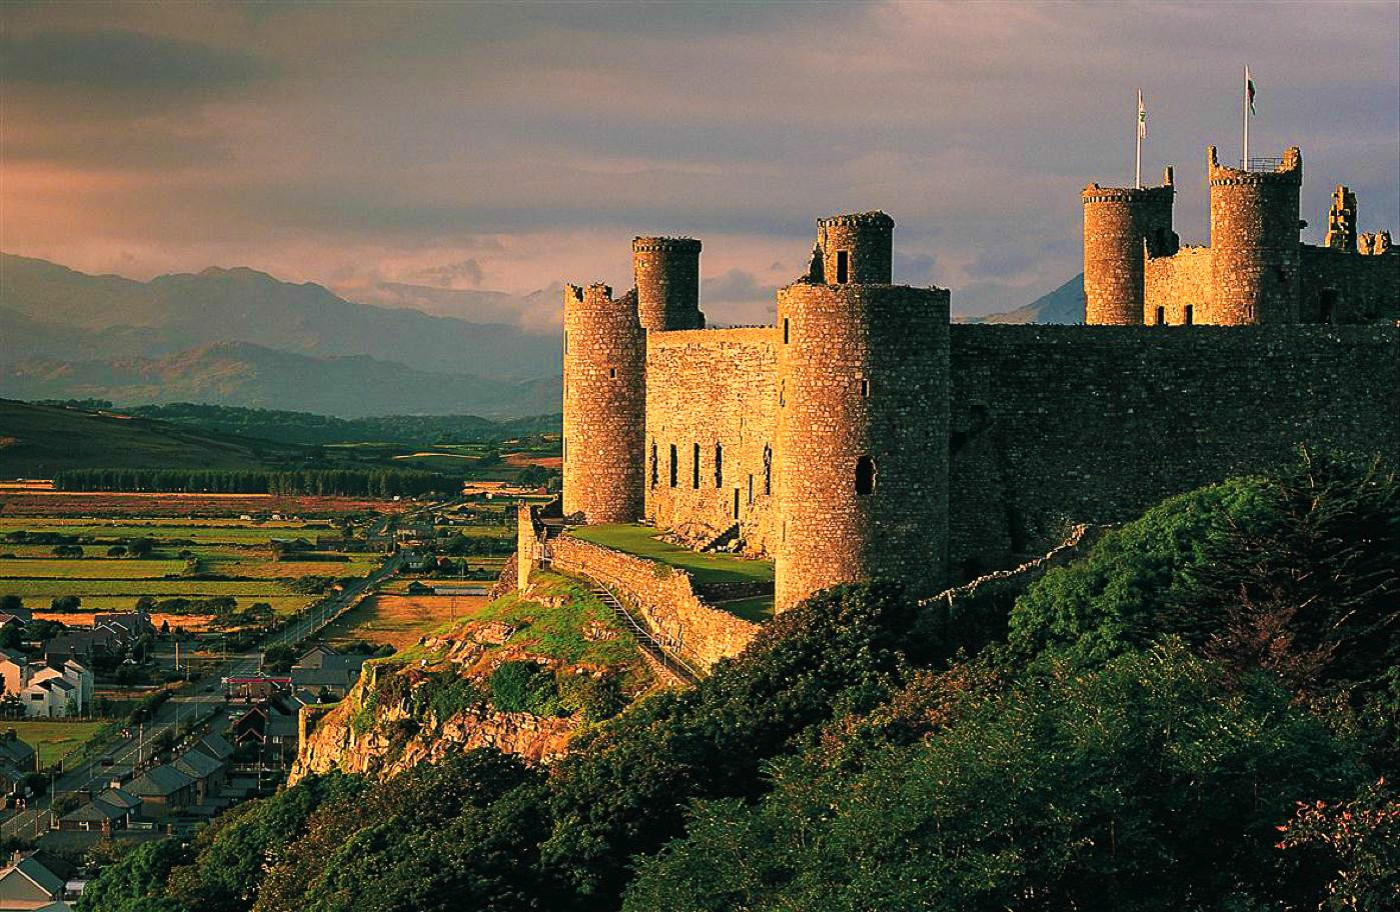 16 Fairytale Castles You Must See in Wales! Beaumaris Castle Caernarfon Castle Caerphilly Castle Carreg Cennen Castle Castell Coch Chepstow Castle Conwy Castle Criccieth Castle Denbigh Castle Dolwyddelan Castle Harlech Castle Kidwelly Castle Raglan Castle St Davids Bishop's Palace Tintern Abbey Tretower Court & Castle Weobley Castle (11)